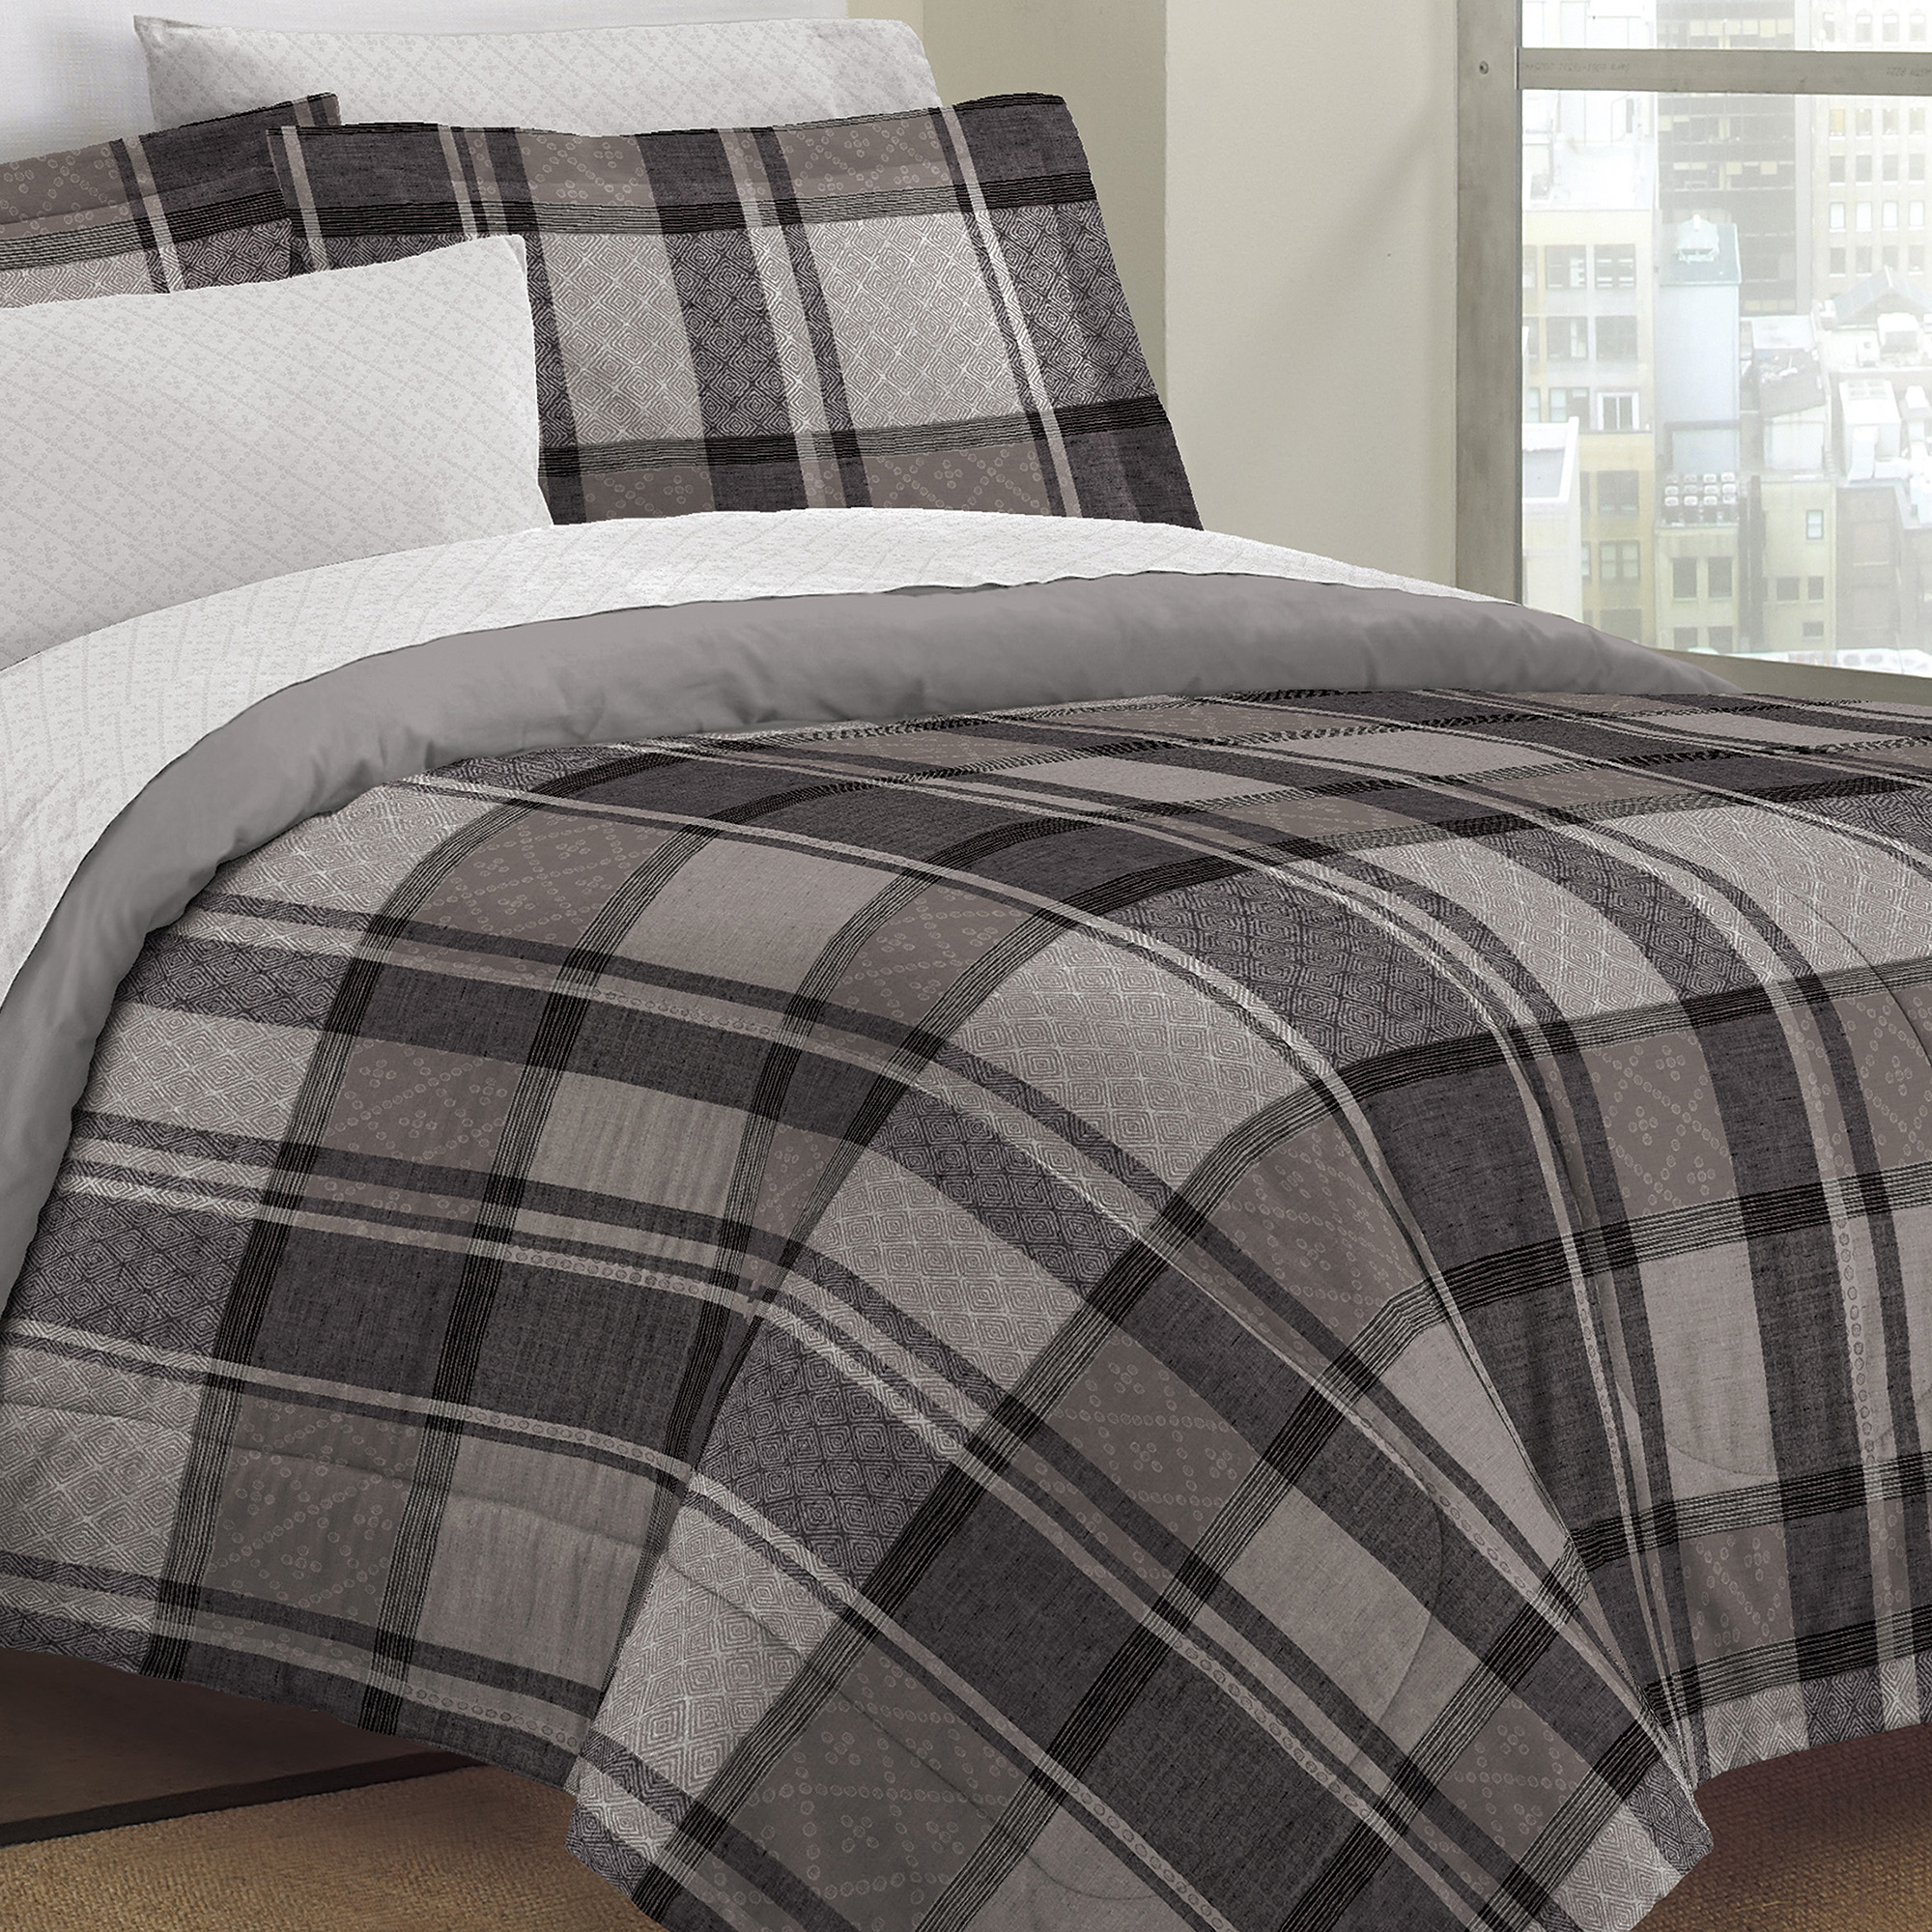 Loft Style Ultimate Plaid Mini Bed In A Bag Bedding Set